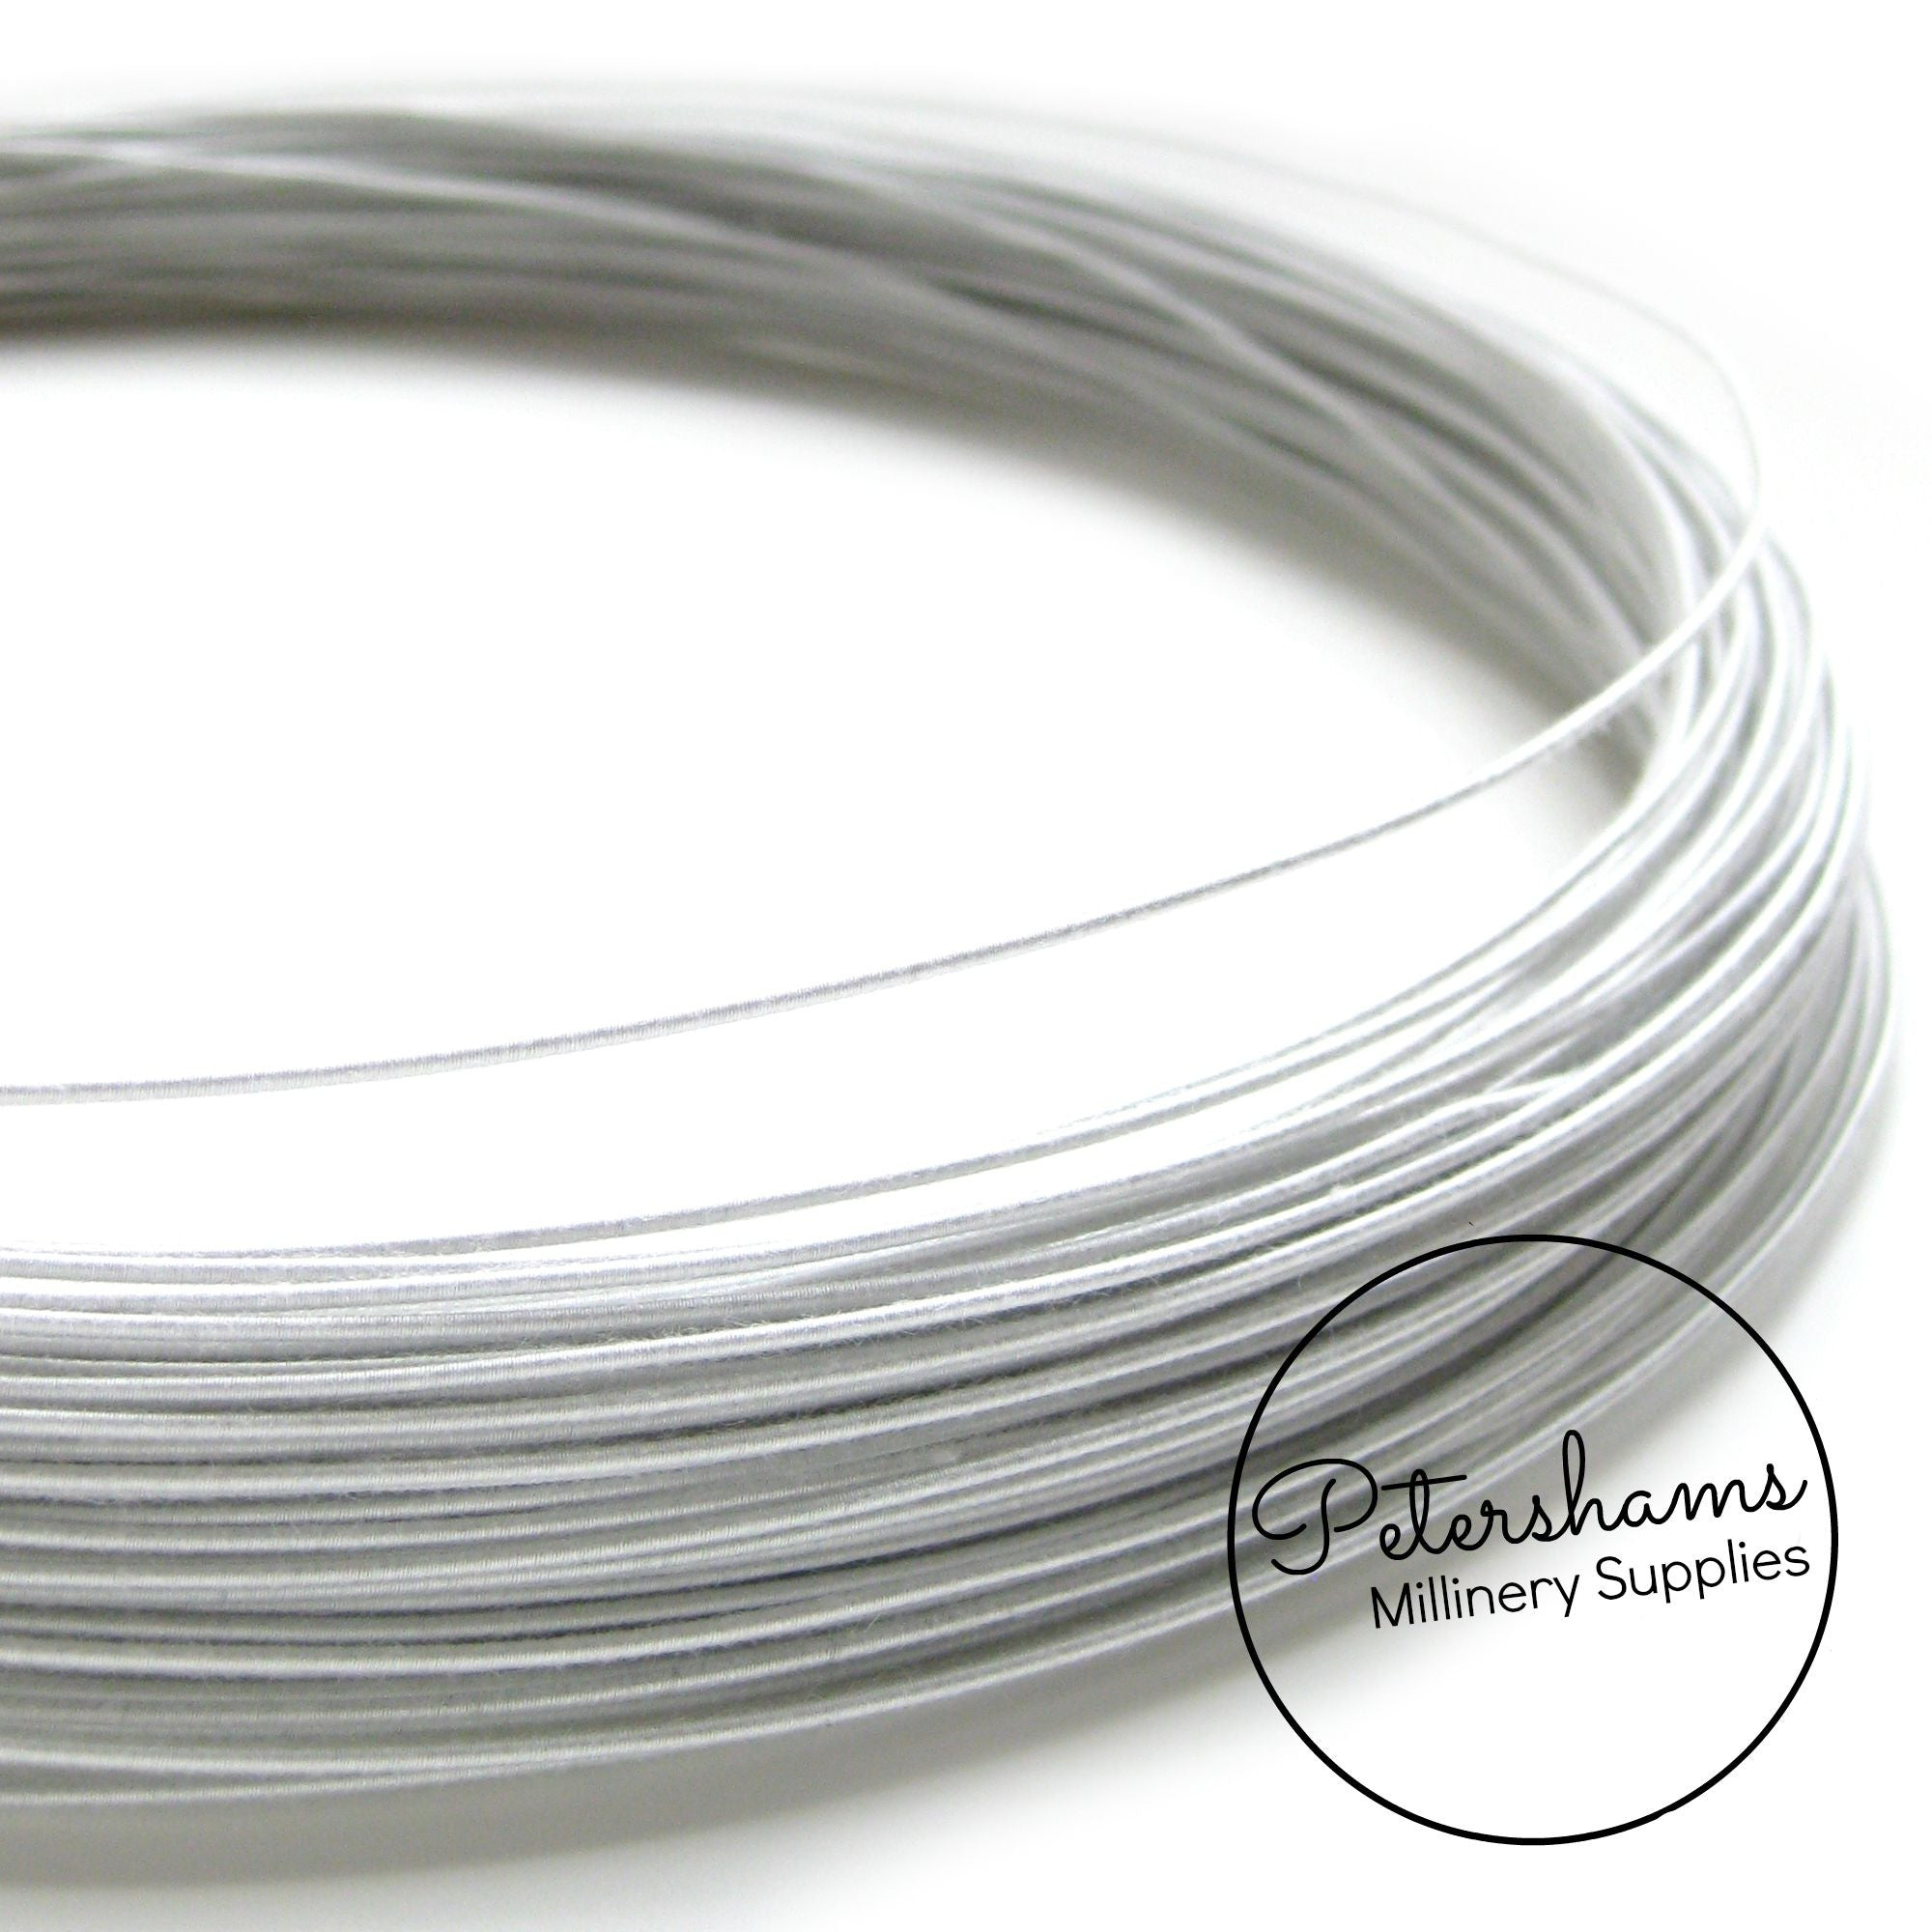 1mm Cotton Covered Millinery Wire – Petershams Millinery Supplies